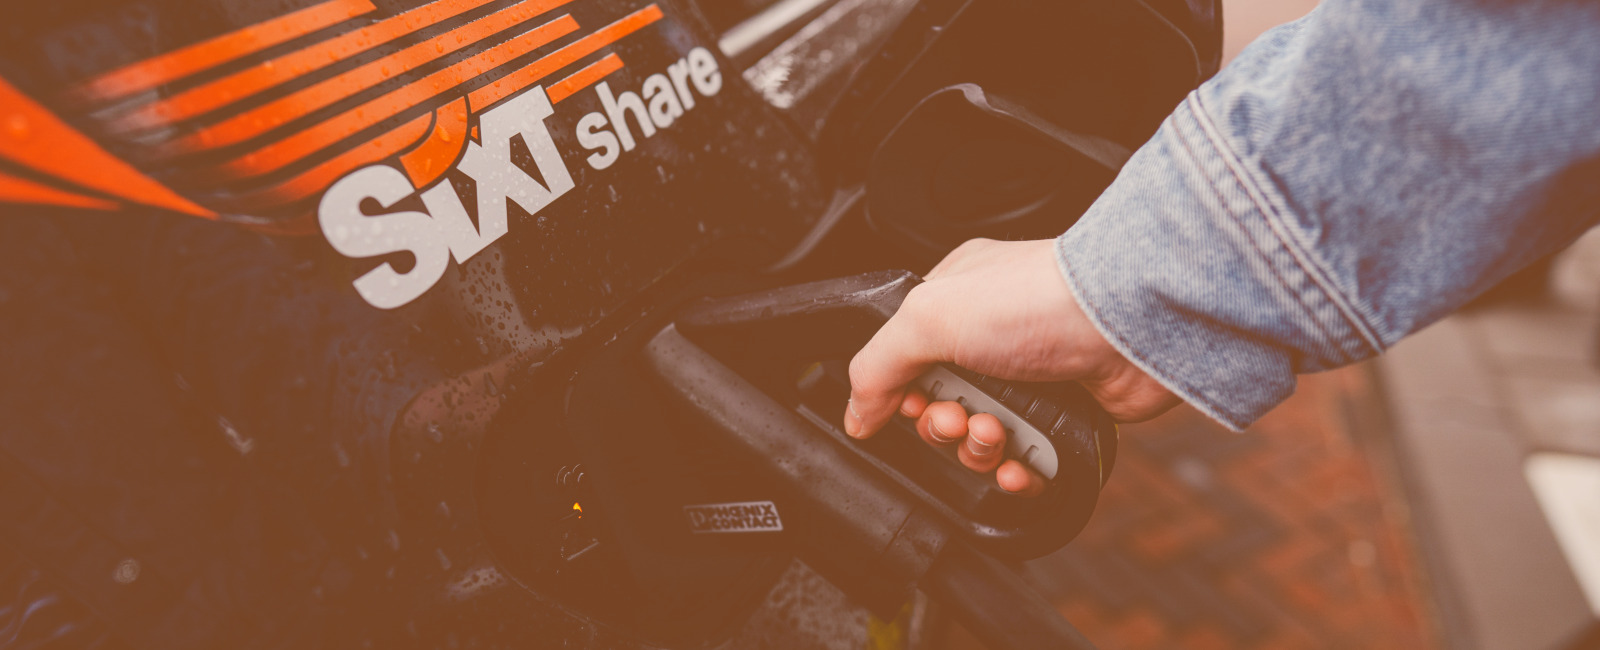 sixt share carsharing opladen 4